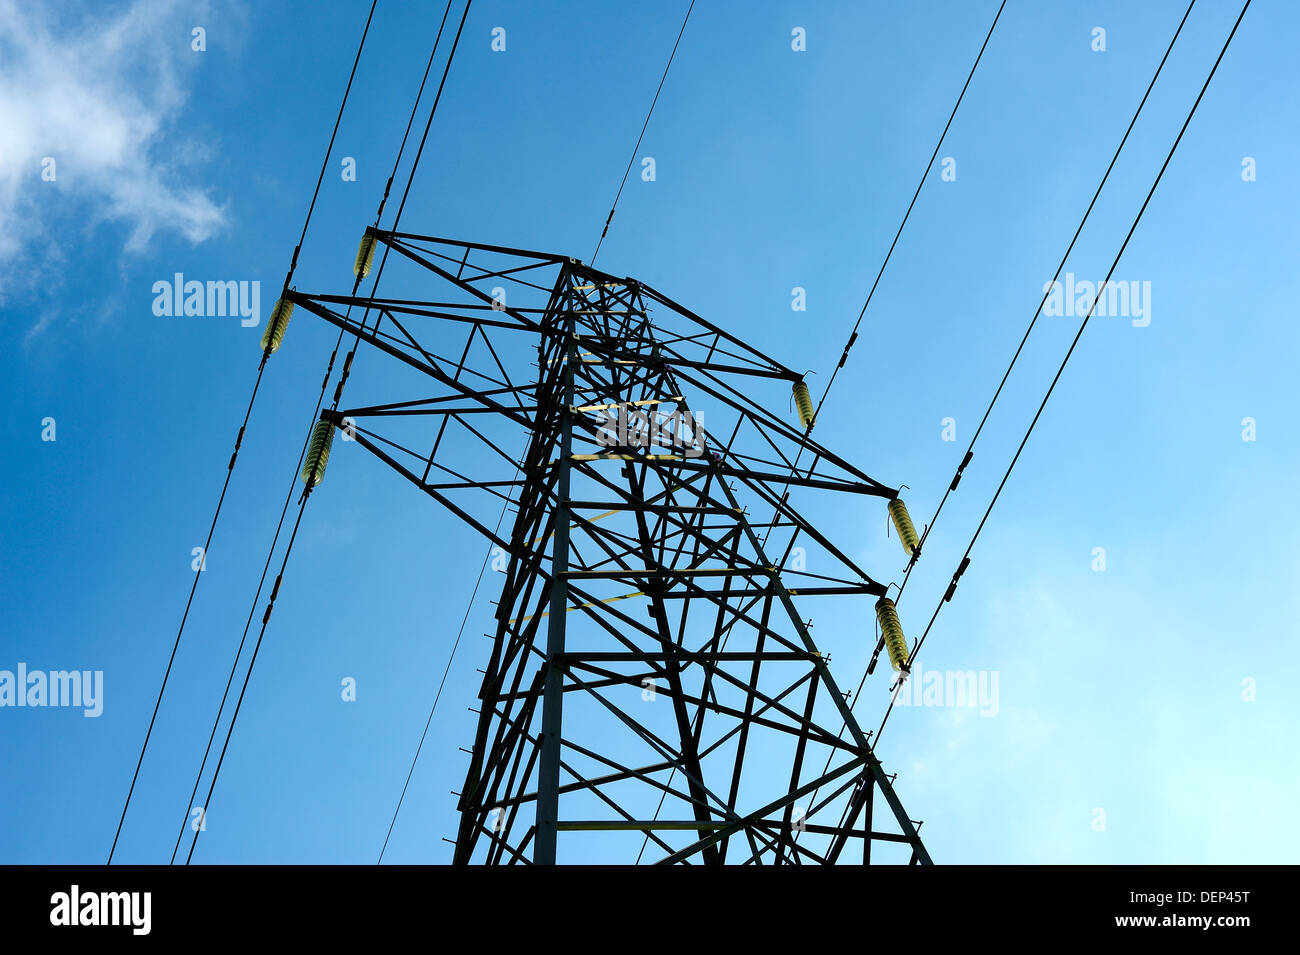 ELECTRICAL POWER PYLON WITH SUPPLY CABLES OR LINES AGAINST A BLUE SKY ELECTRIC - Stock Image